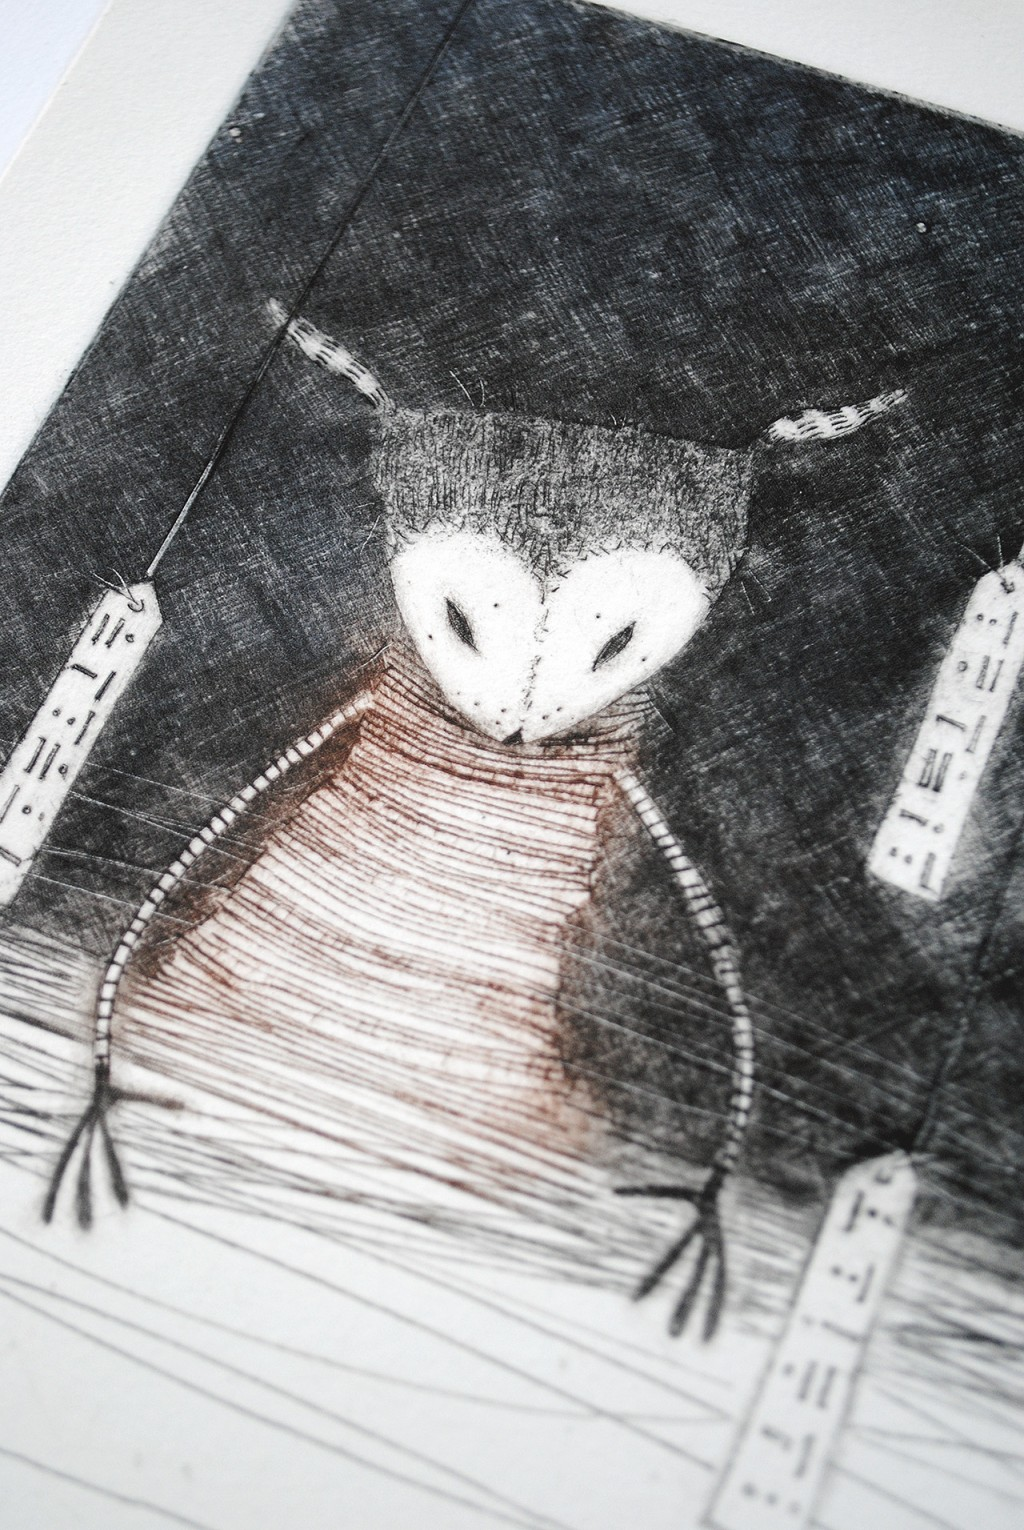 Gathering the night – Night Forest No.2, detail 1 - drypoint print by minu